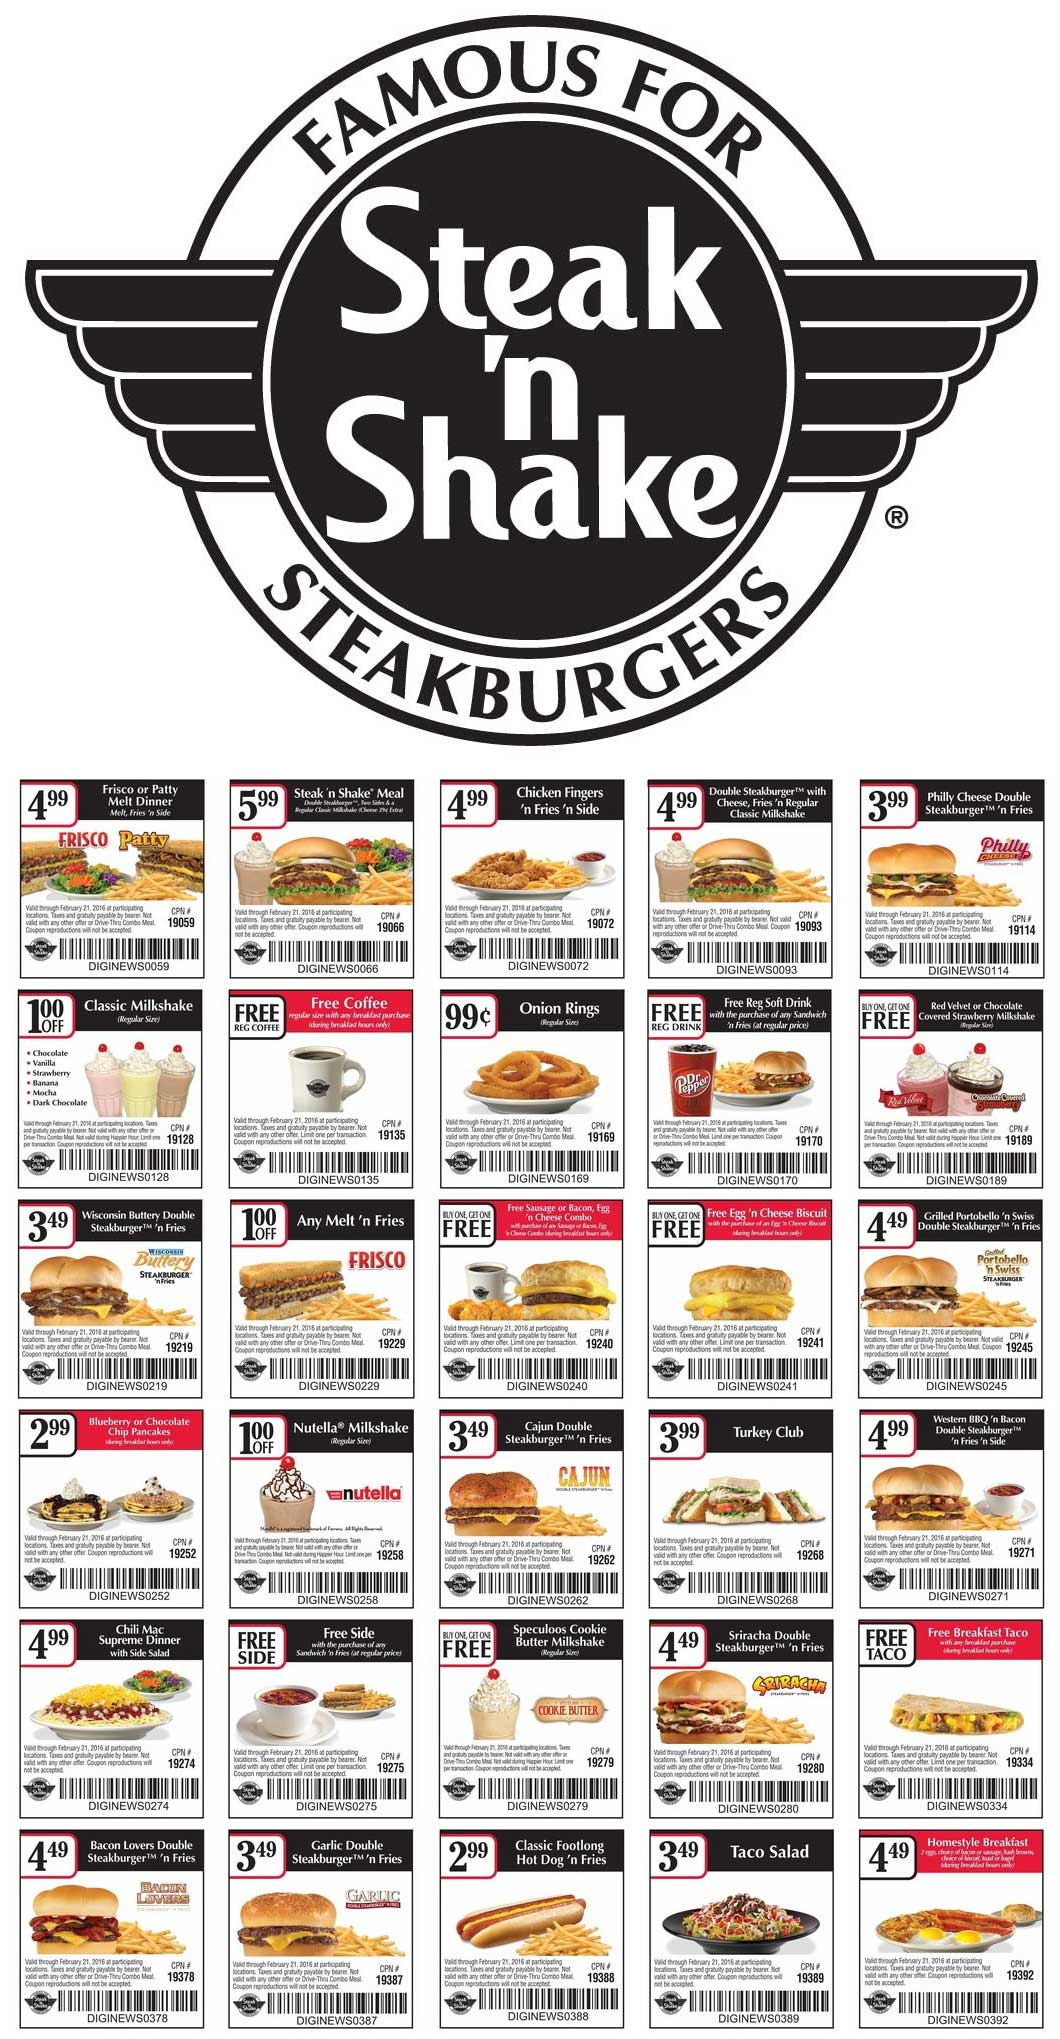 Steak n Shake Coupon March 2018 Free coffee, drink, second breakfast combo & more at Steak n Shake